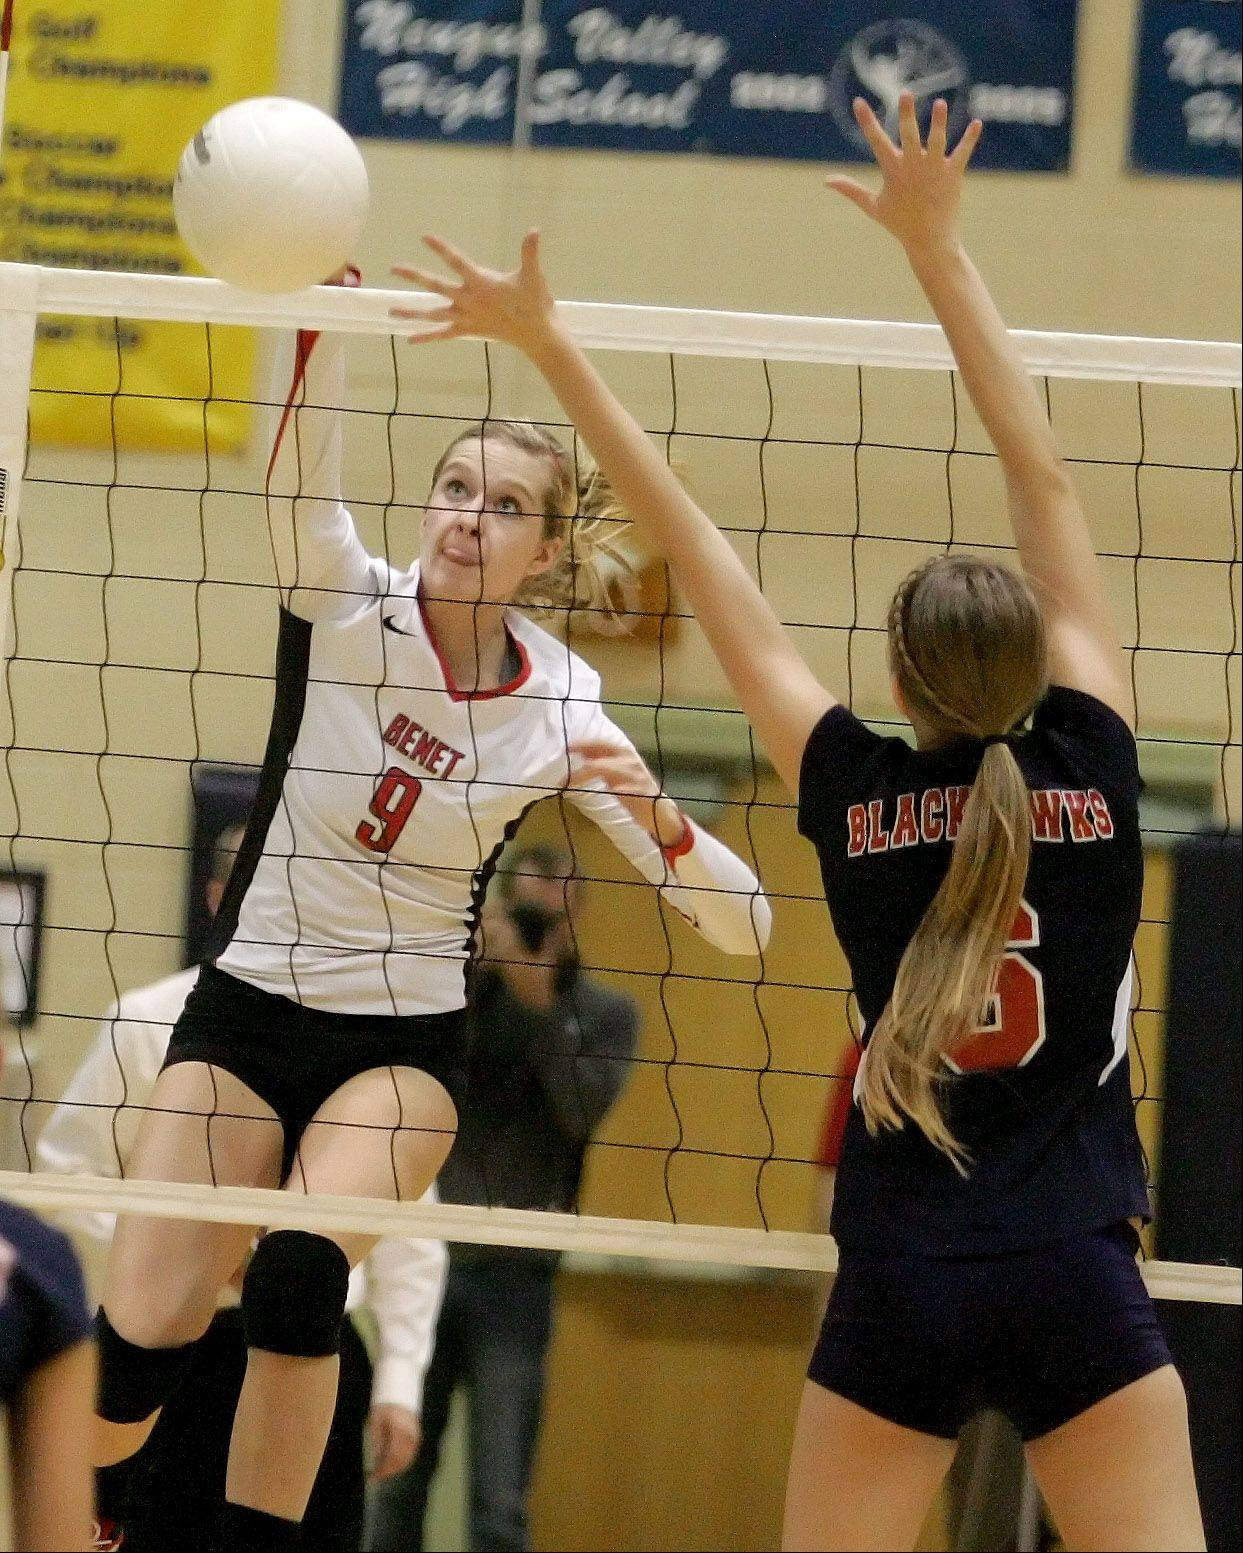 Abby Willett of Benet, tips the ball over the net in action against West Aurora during girls volleyball Neuqua Valley sectional semifinals in Naperville on Tuesday.